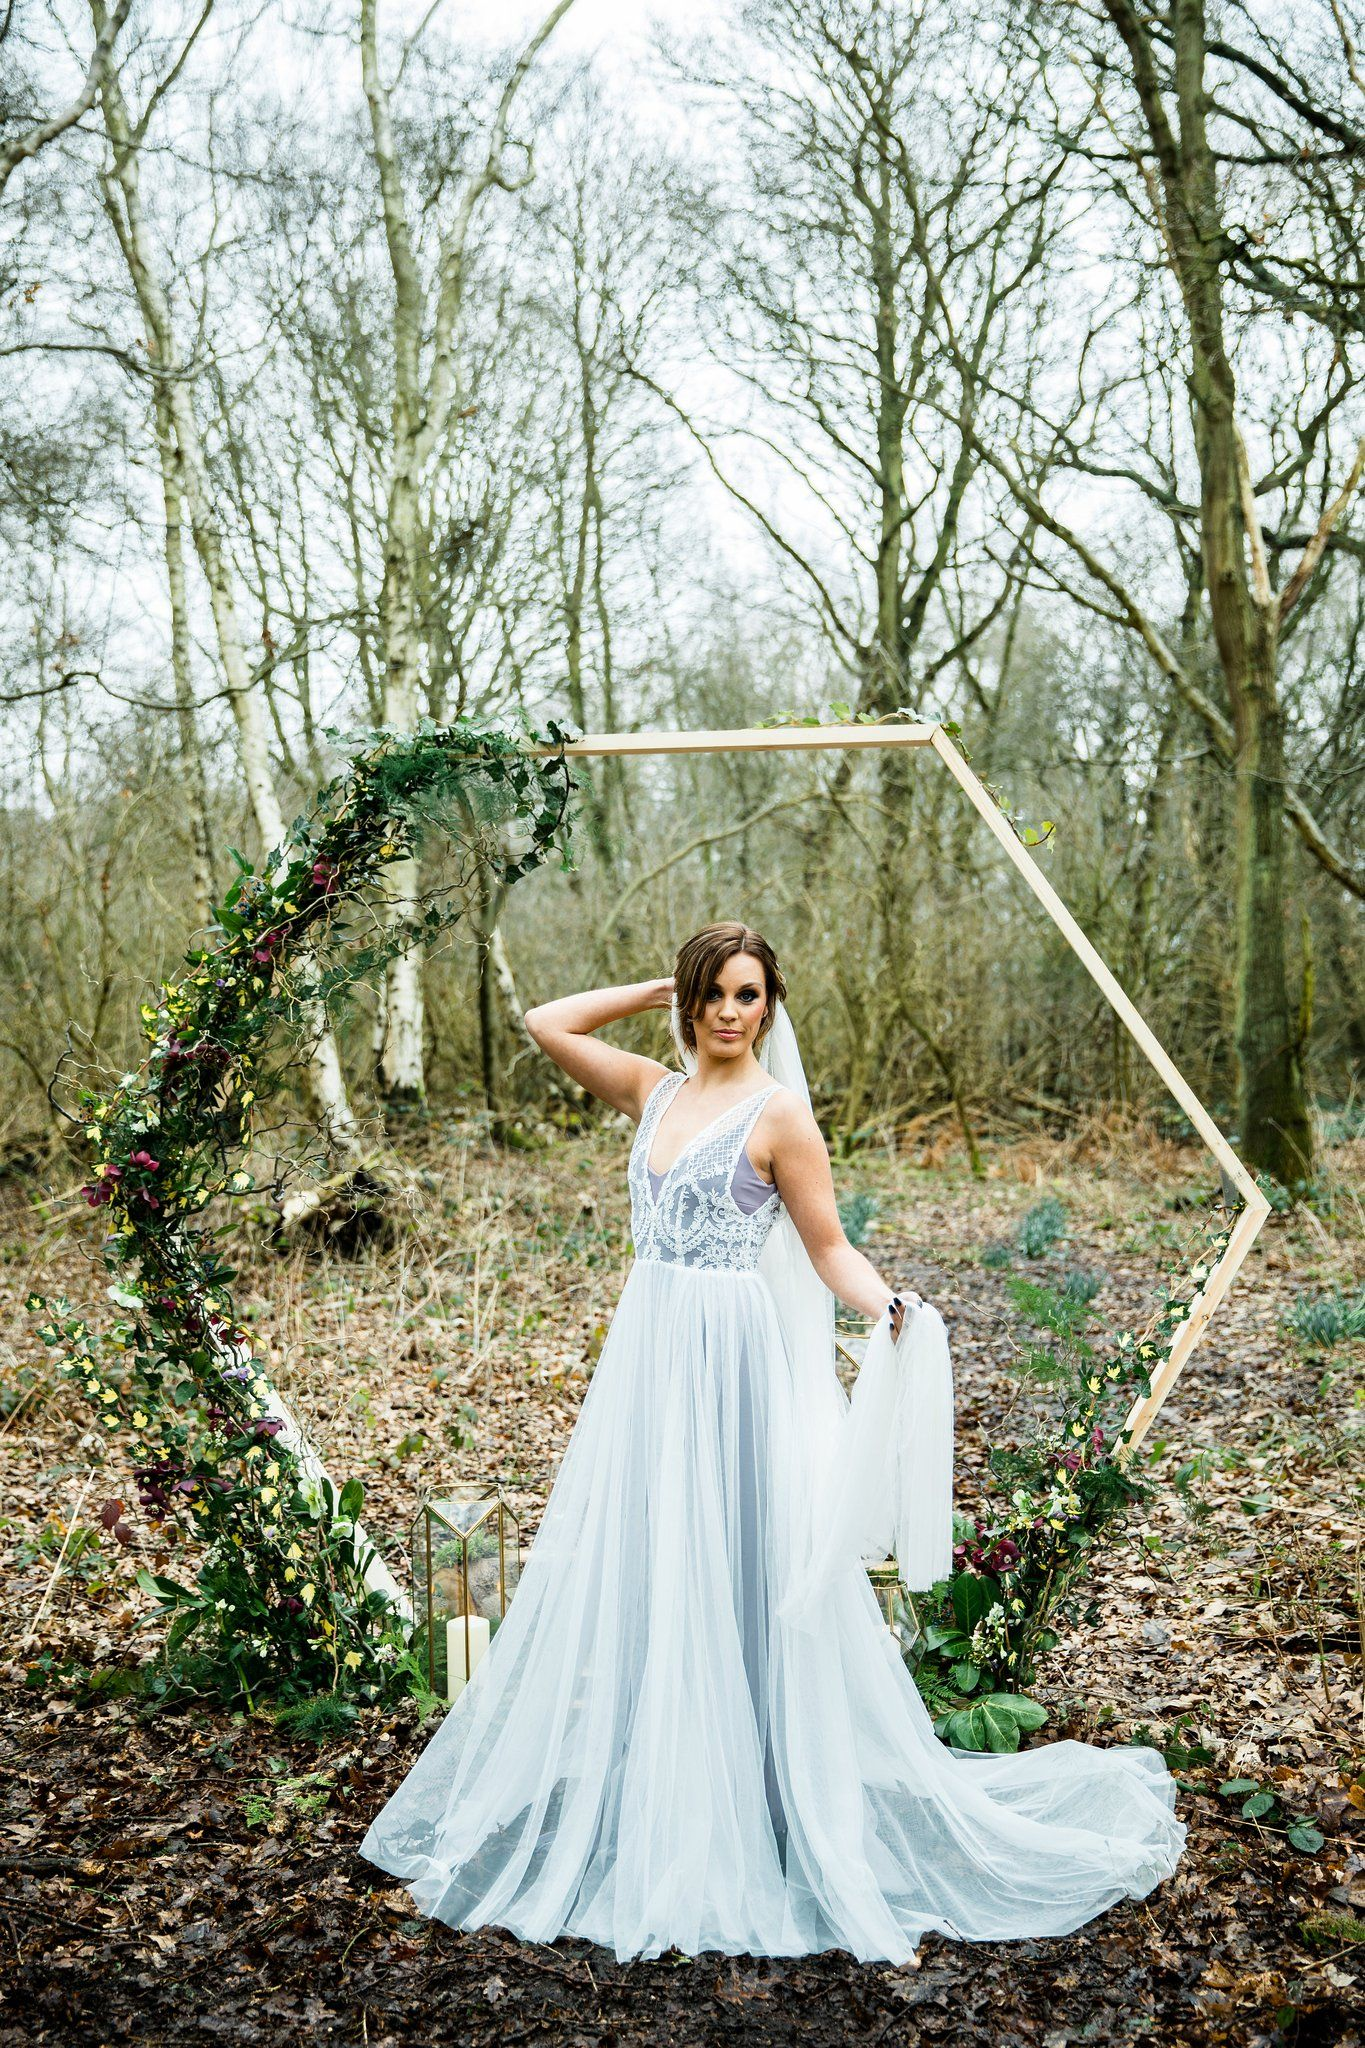 Barbarella bohemian lace wedding dress with tulle skirt and